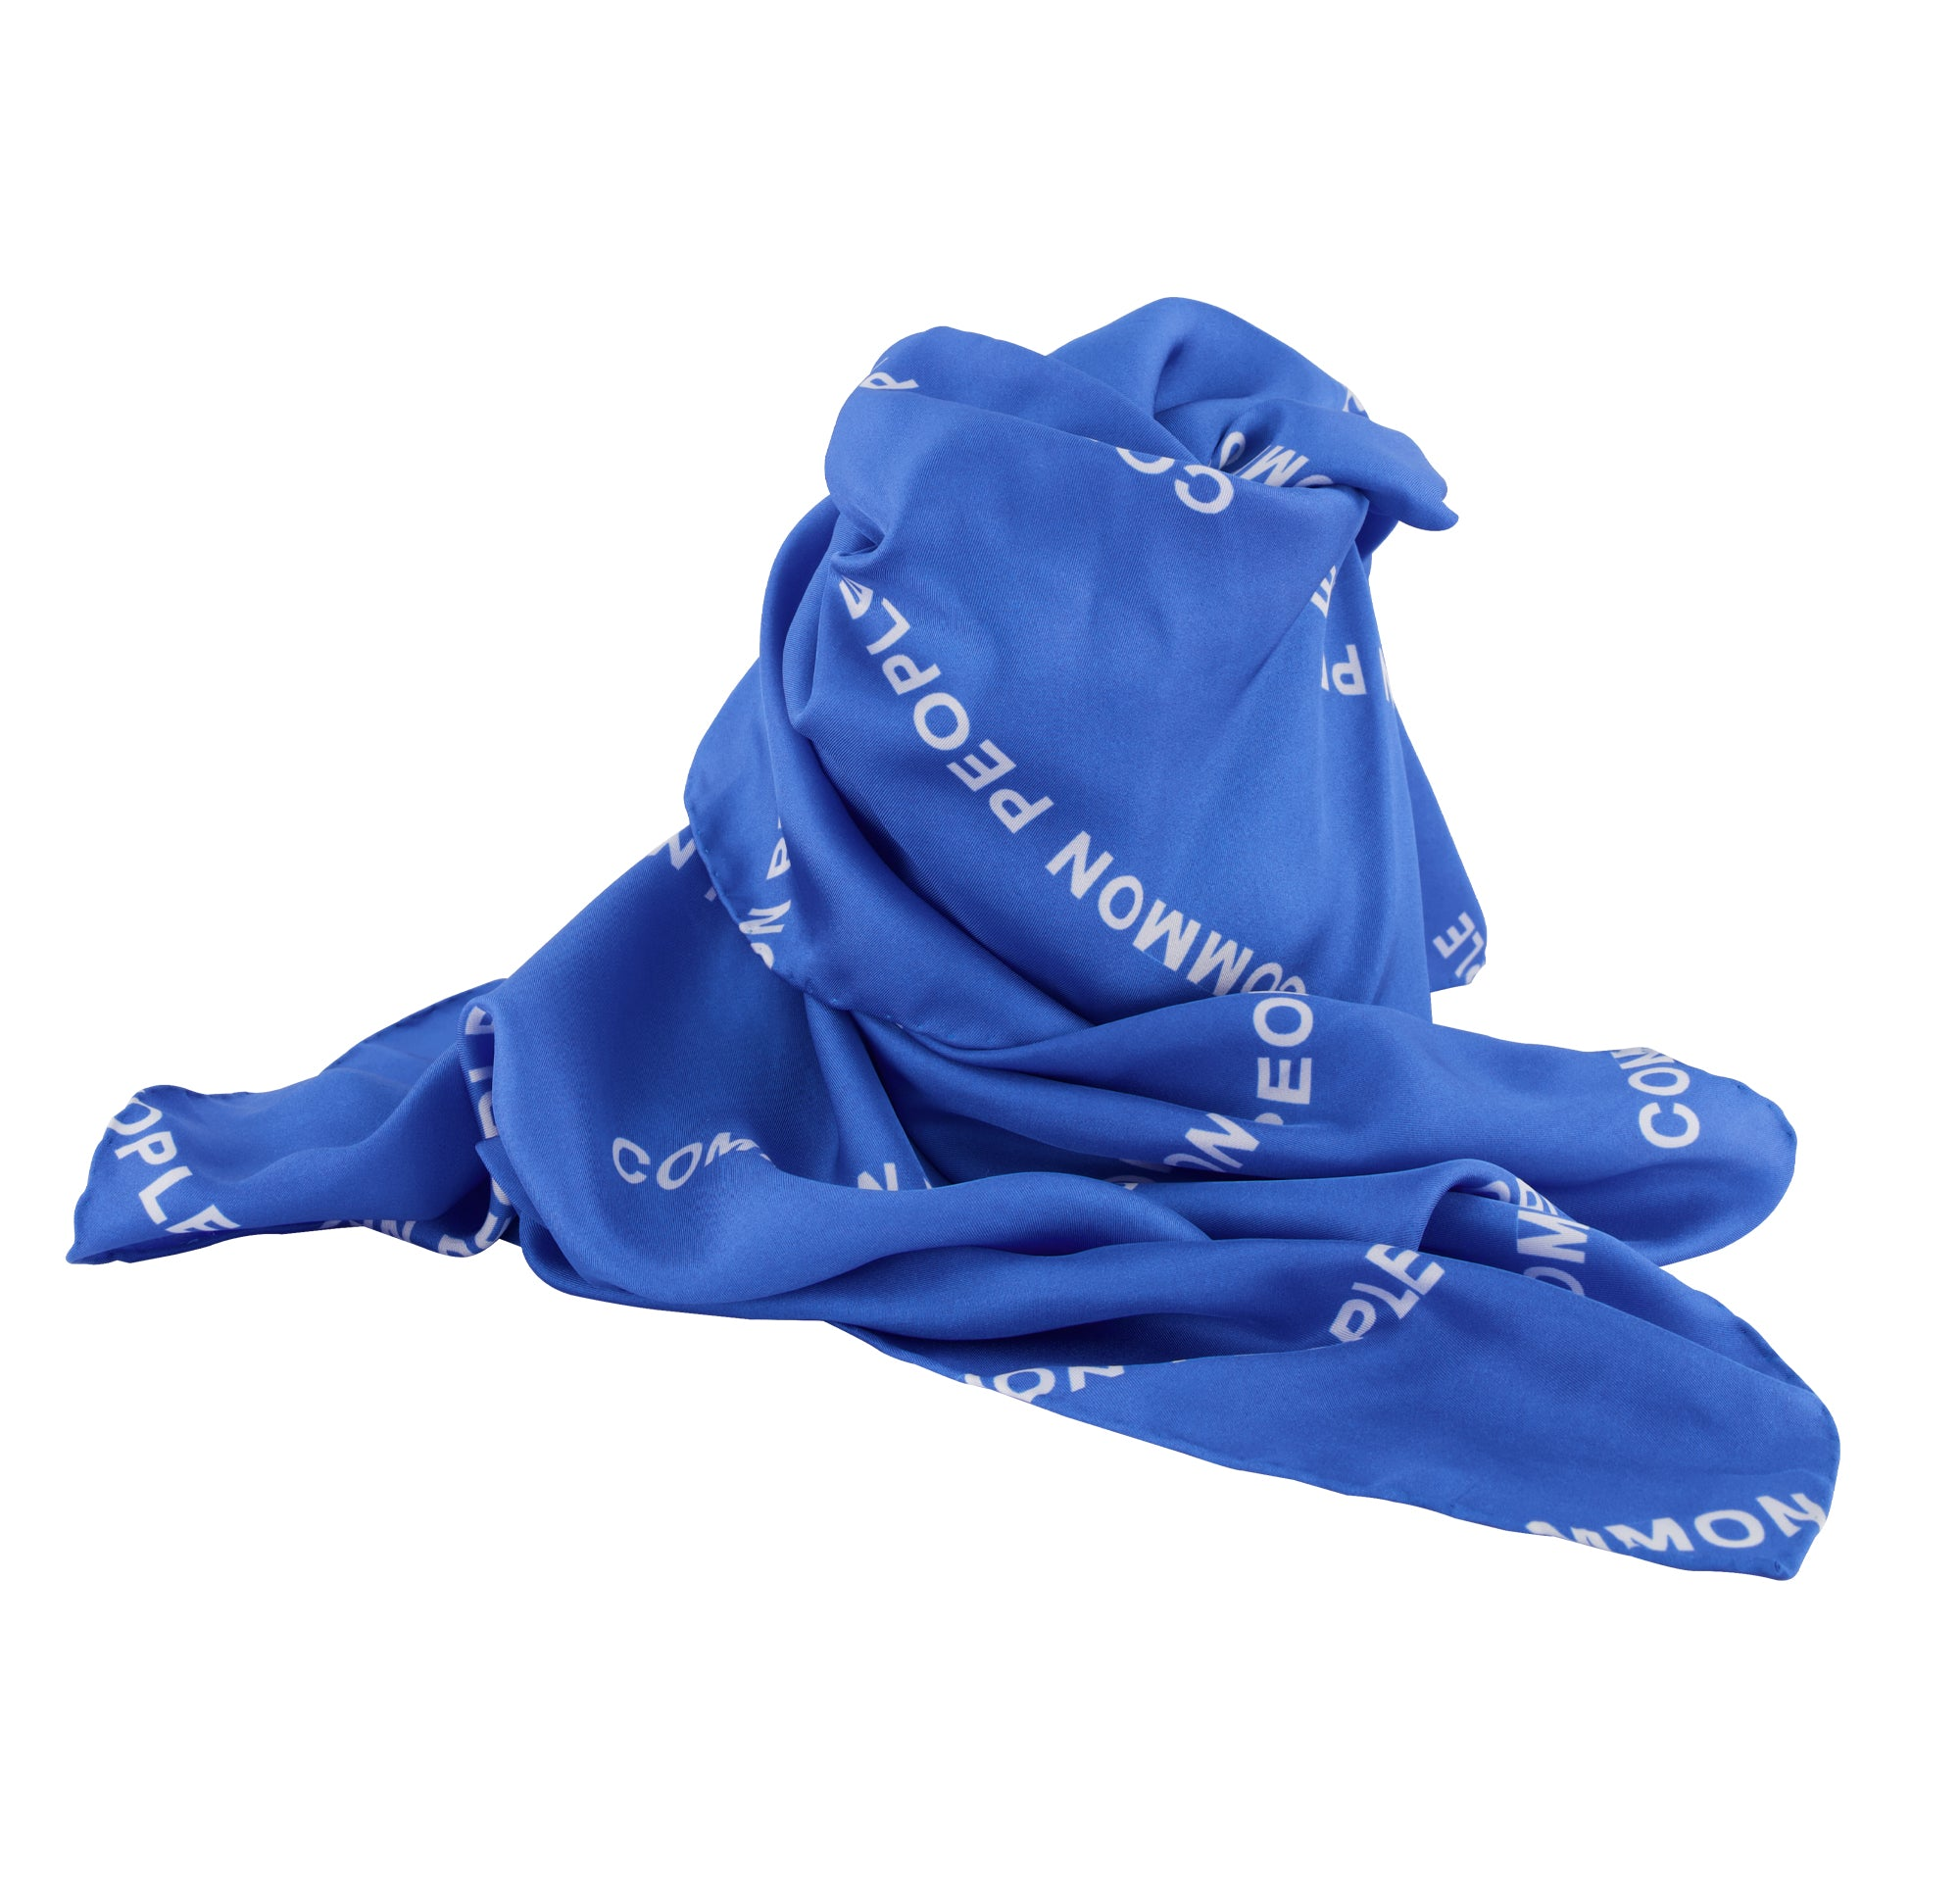 Silk Scarf - COMMON PEOPLE Repeat Print